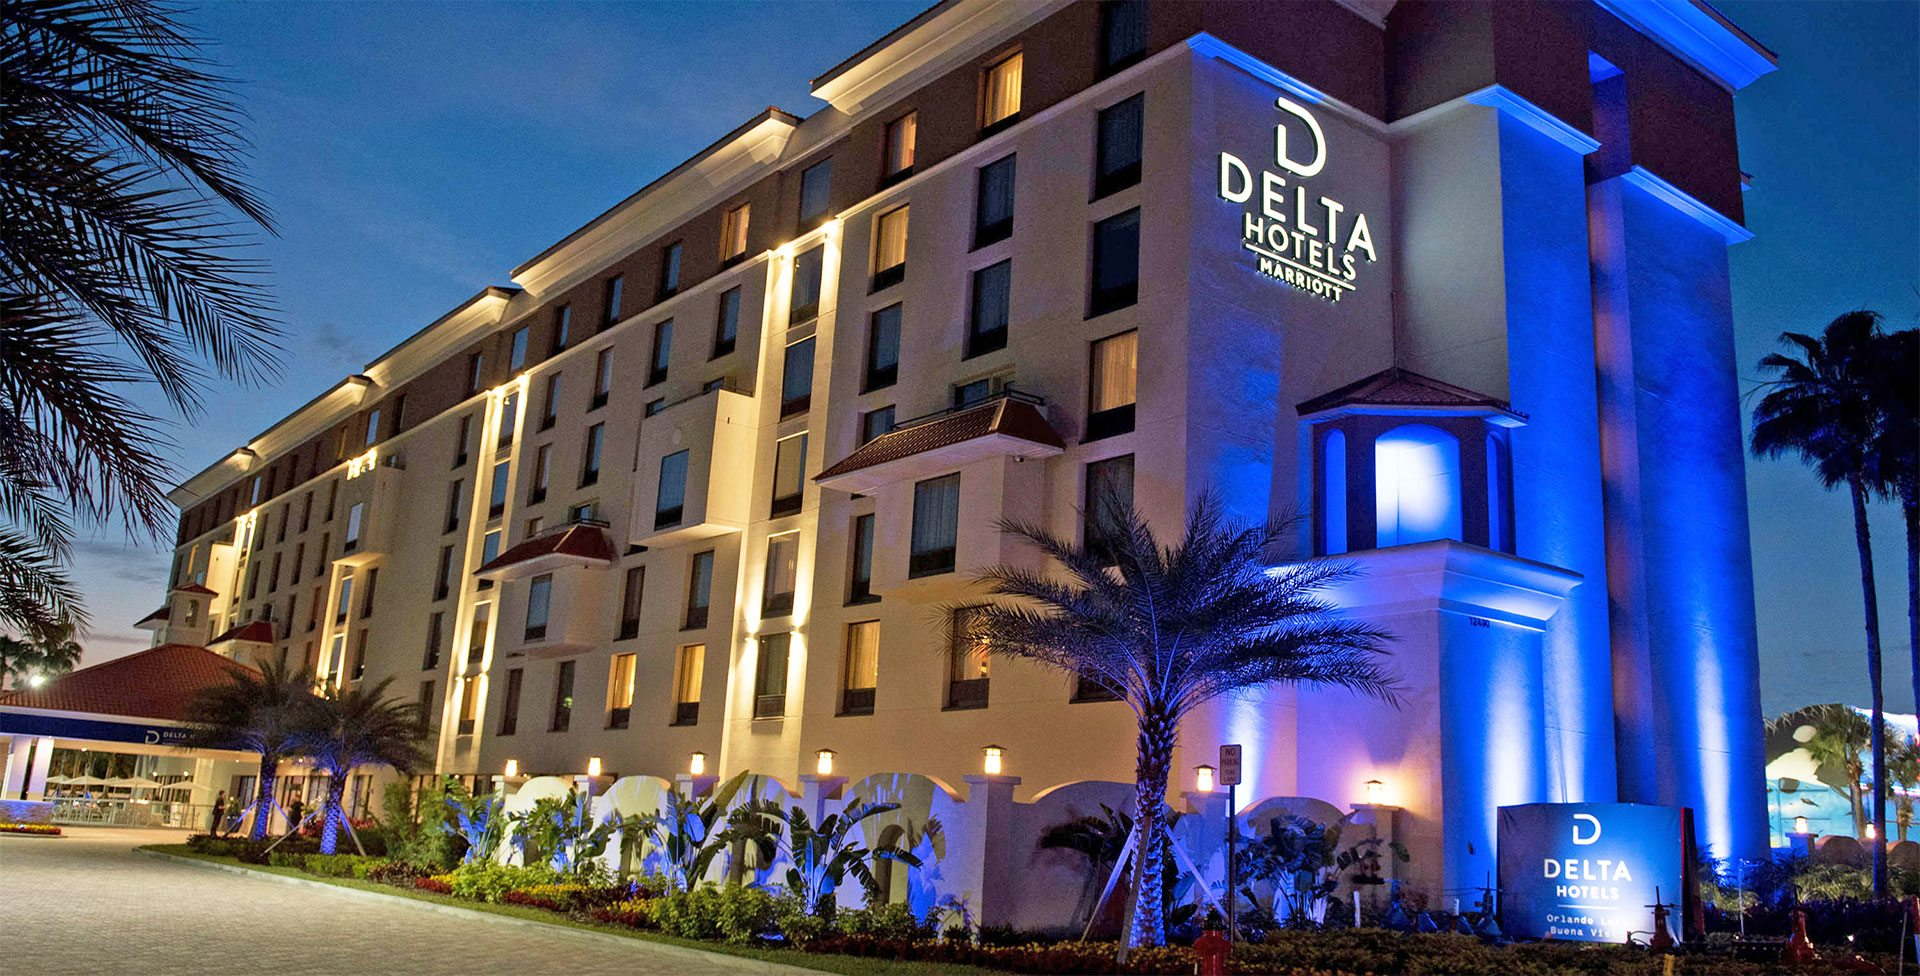 10 Ways to Chill by the Delta Orlando Hotel Poolside